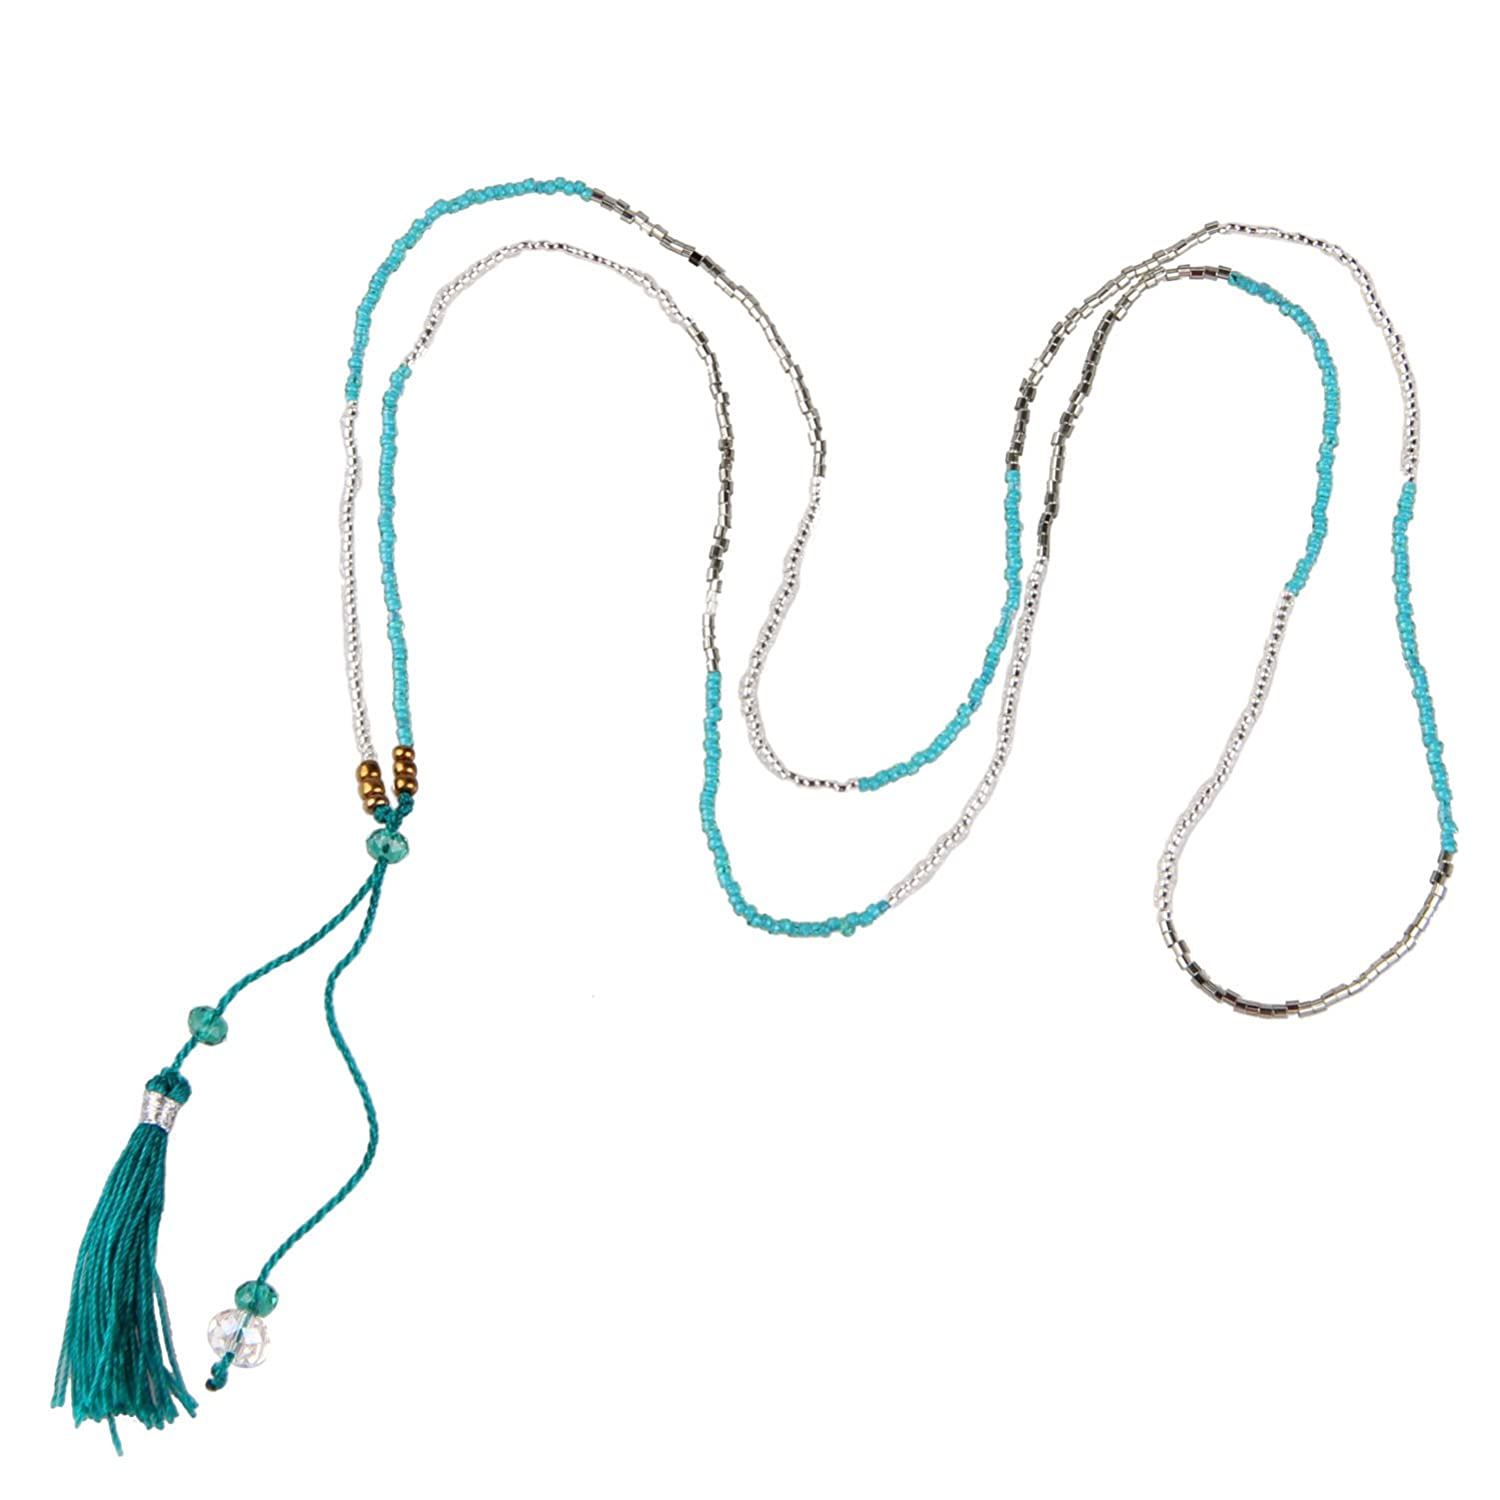 KELITCH Long Lariat Necklace Colorful Seed Bead Tassel Chain Necklace Women Girls Kelitch Jewelry UAMN0185